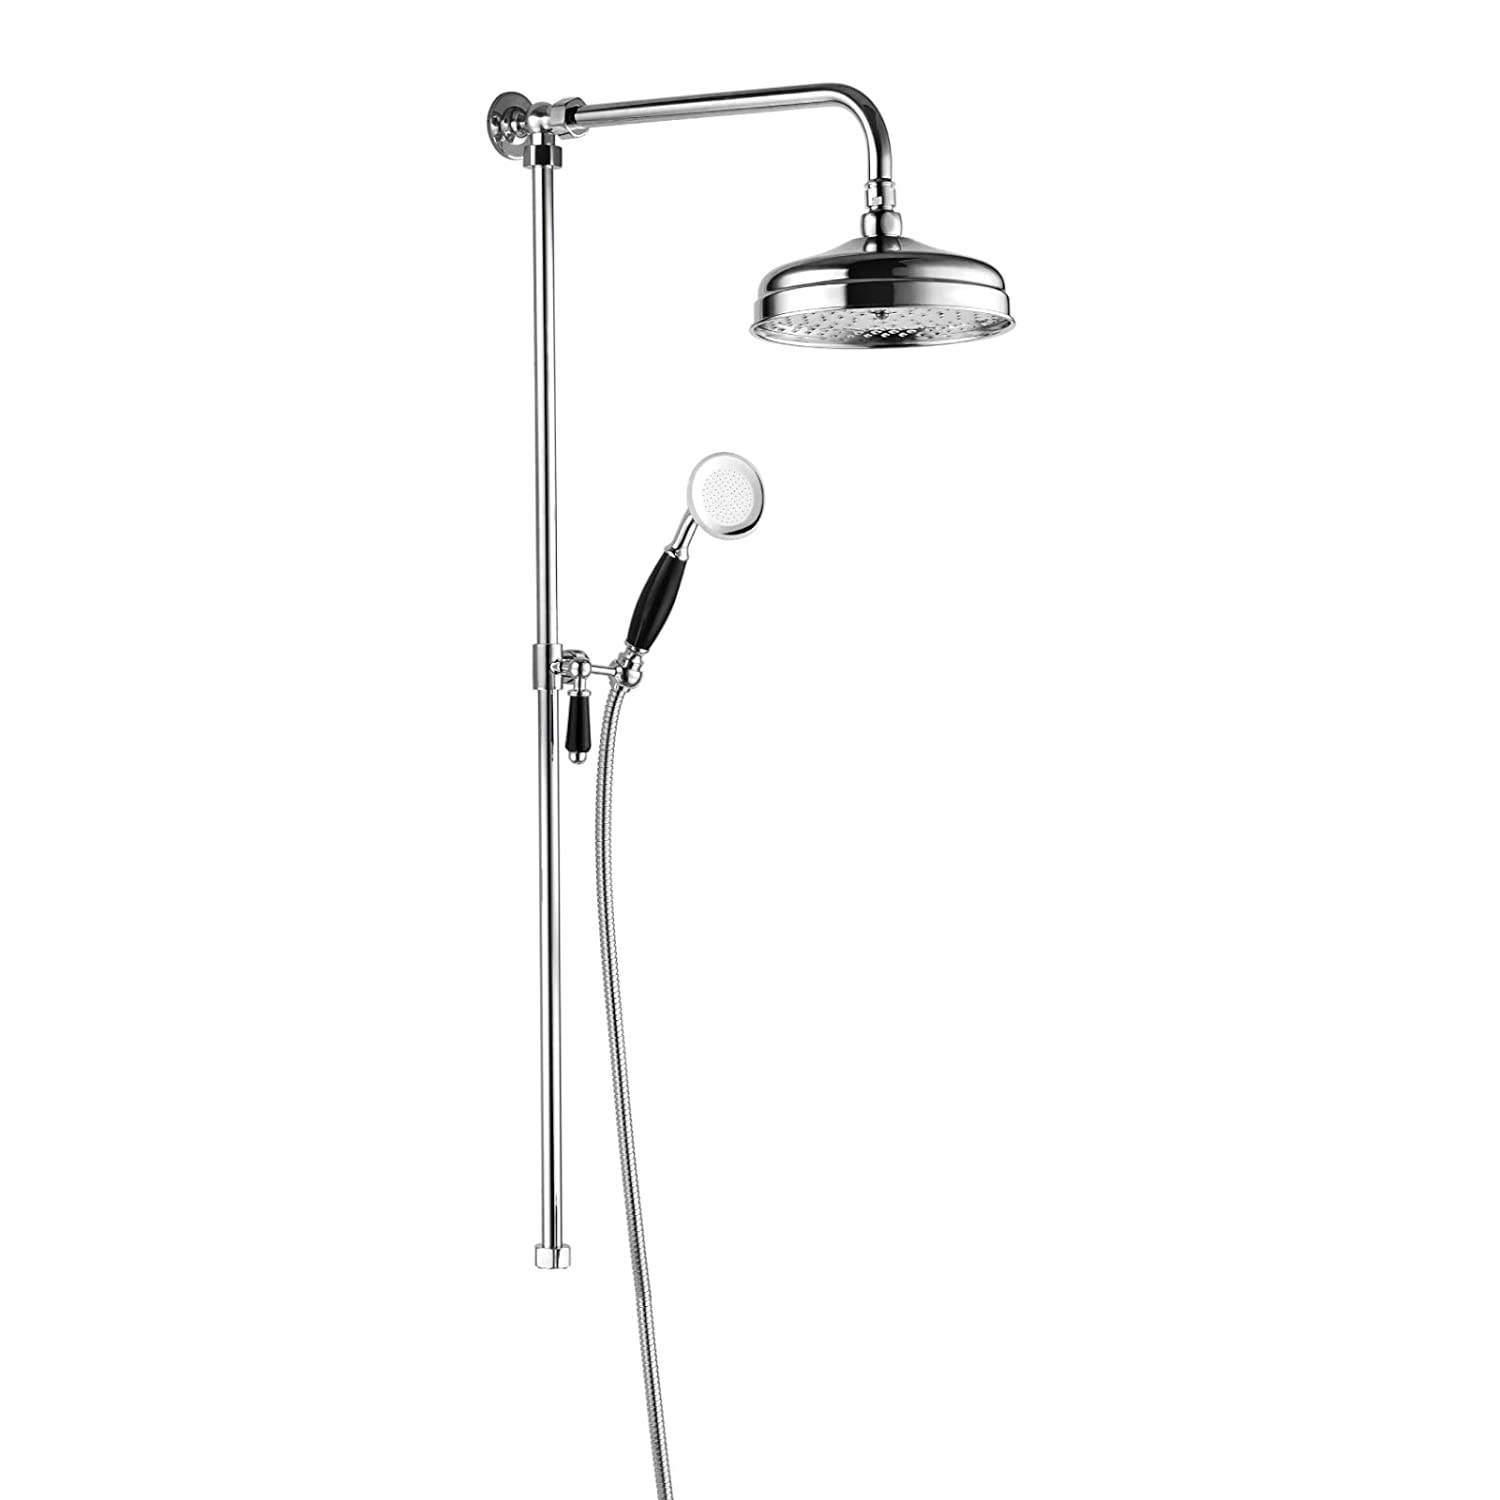 Victoria traditional shower riser rail kit 2 outlet watercan head ...